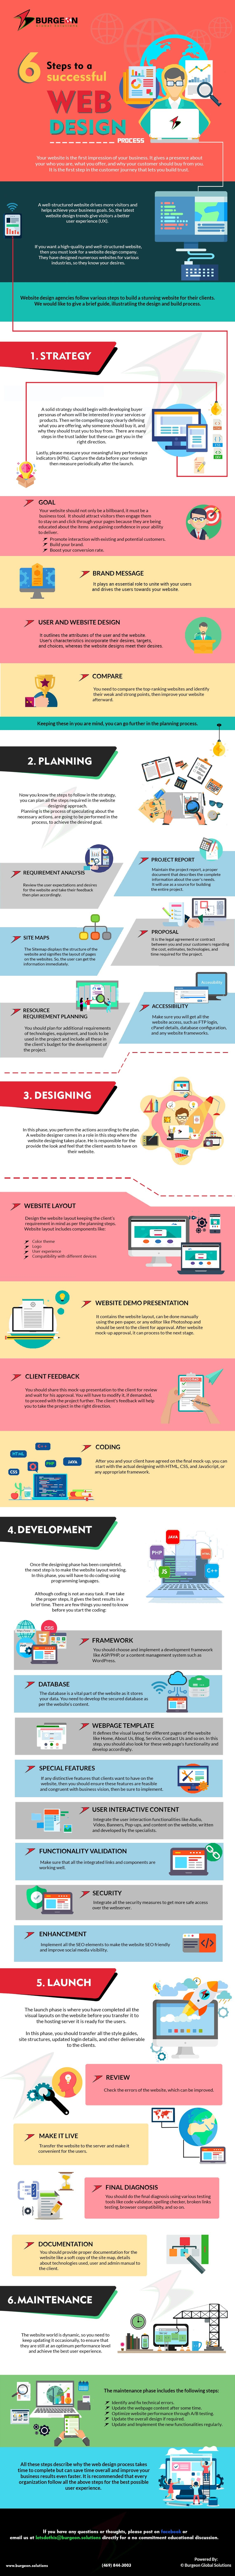 6 Steps to a Successful Website Design Process #infographic